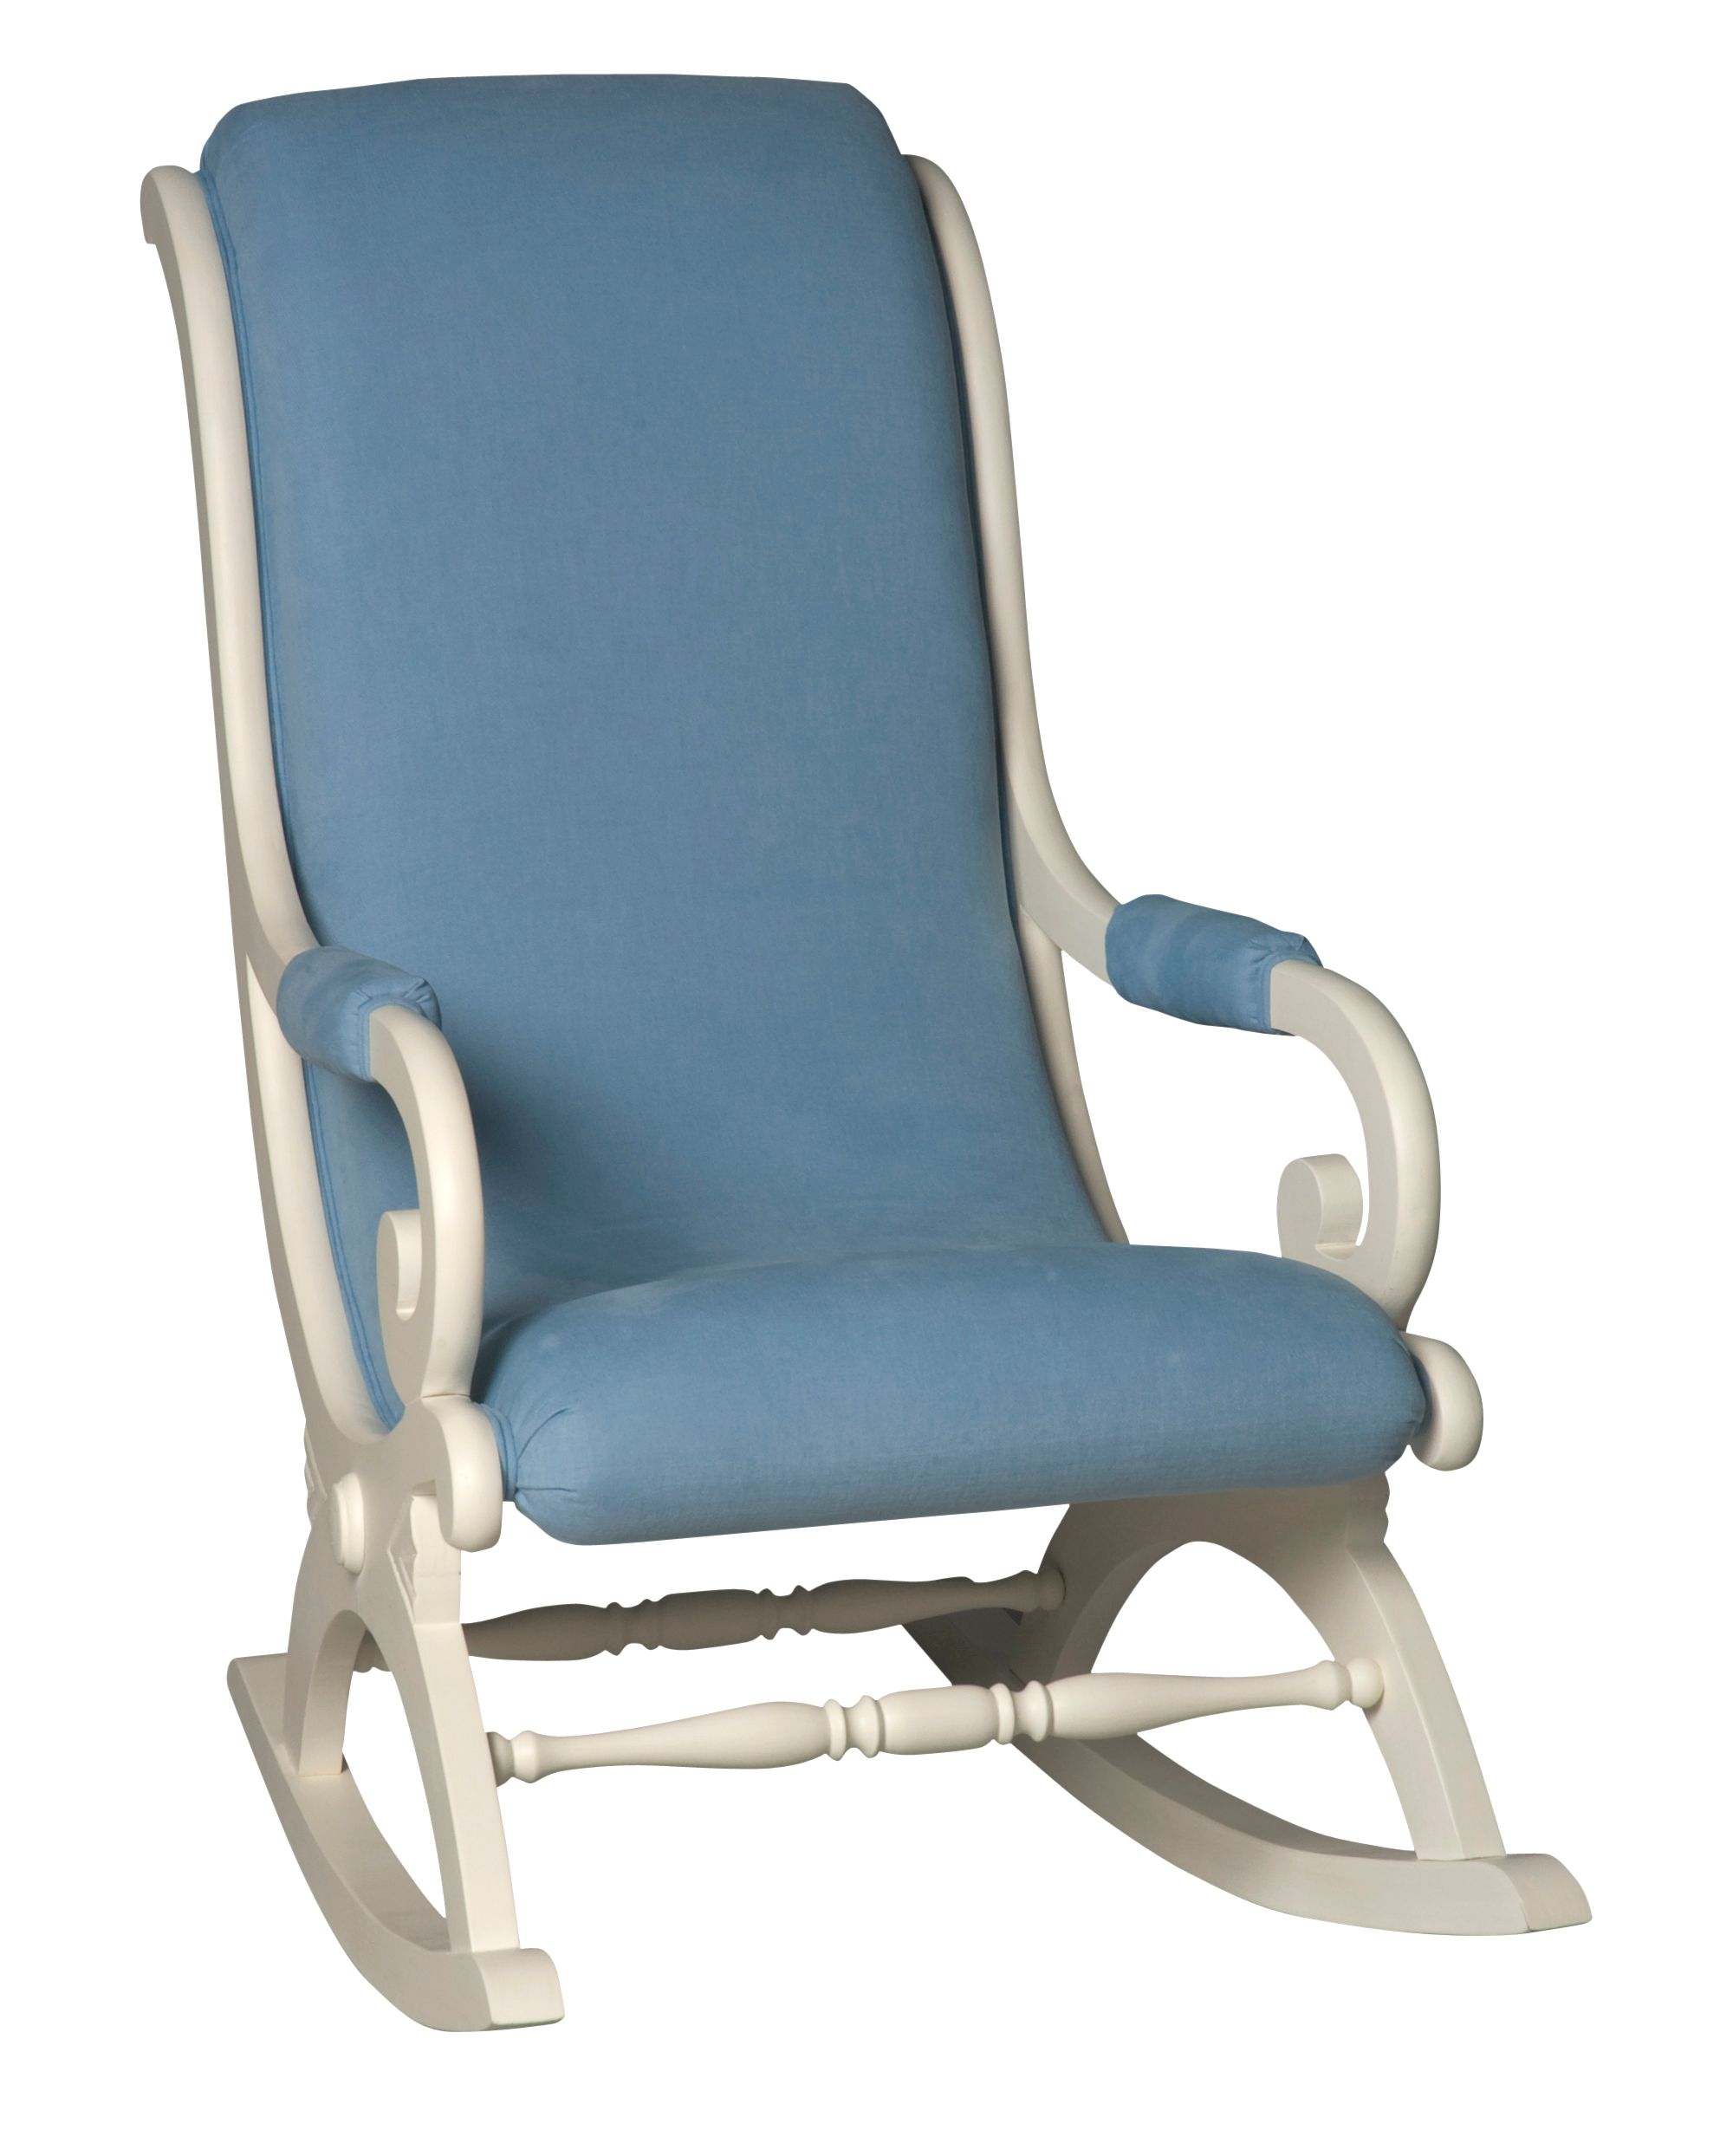 discount rocking chairs pottery barn wingback chair slipcover buy cheap classic compare products prices